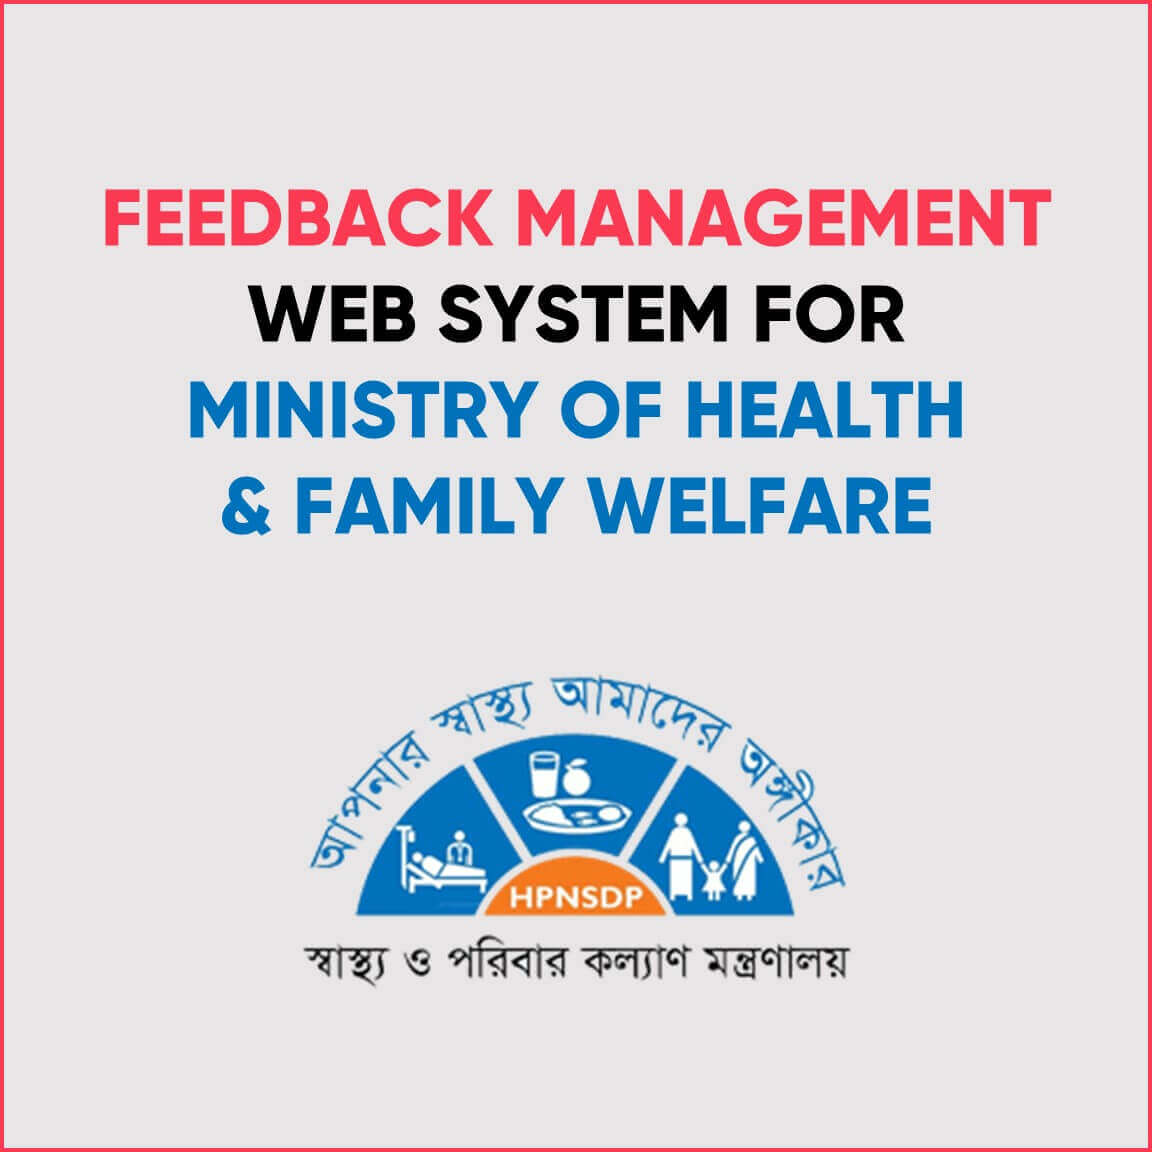 FEEDBACK MANAGEMENT SYSTEM FOR MINISTRY OF HEALTH